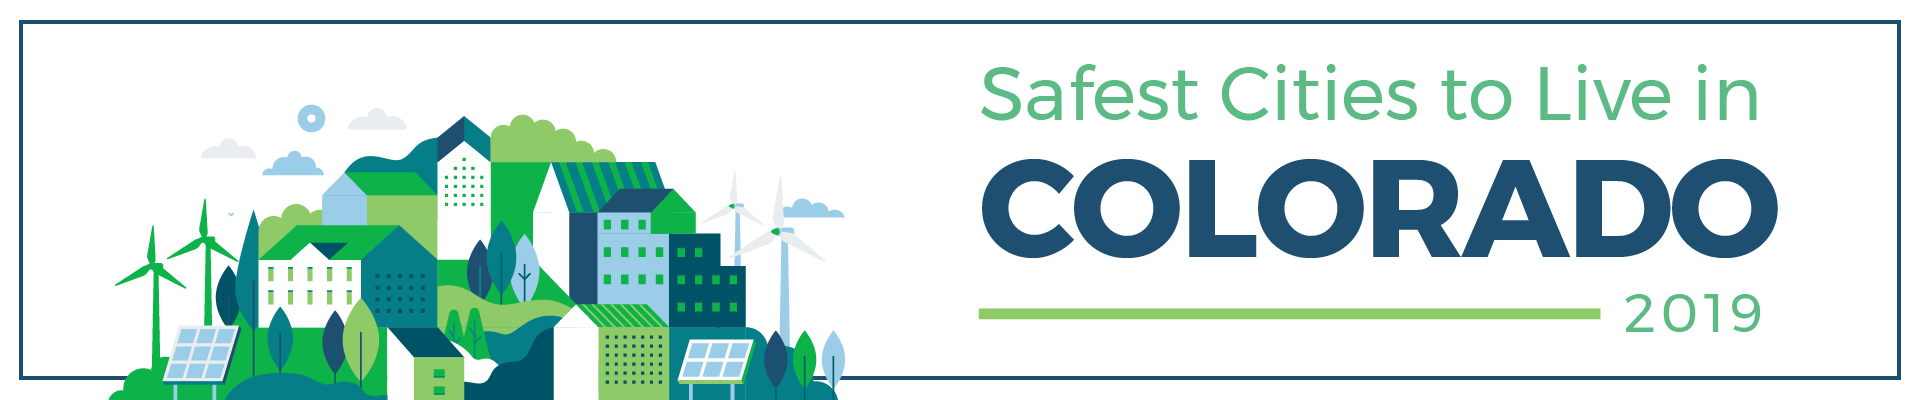 header - safest_cities_colorado_2019